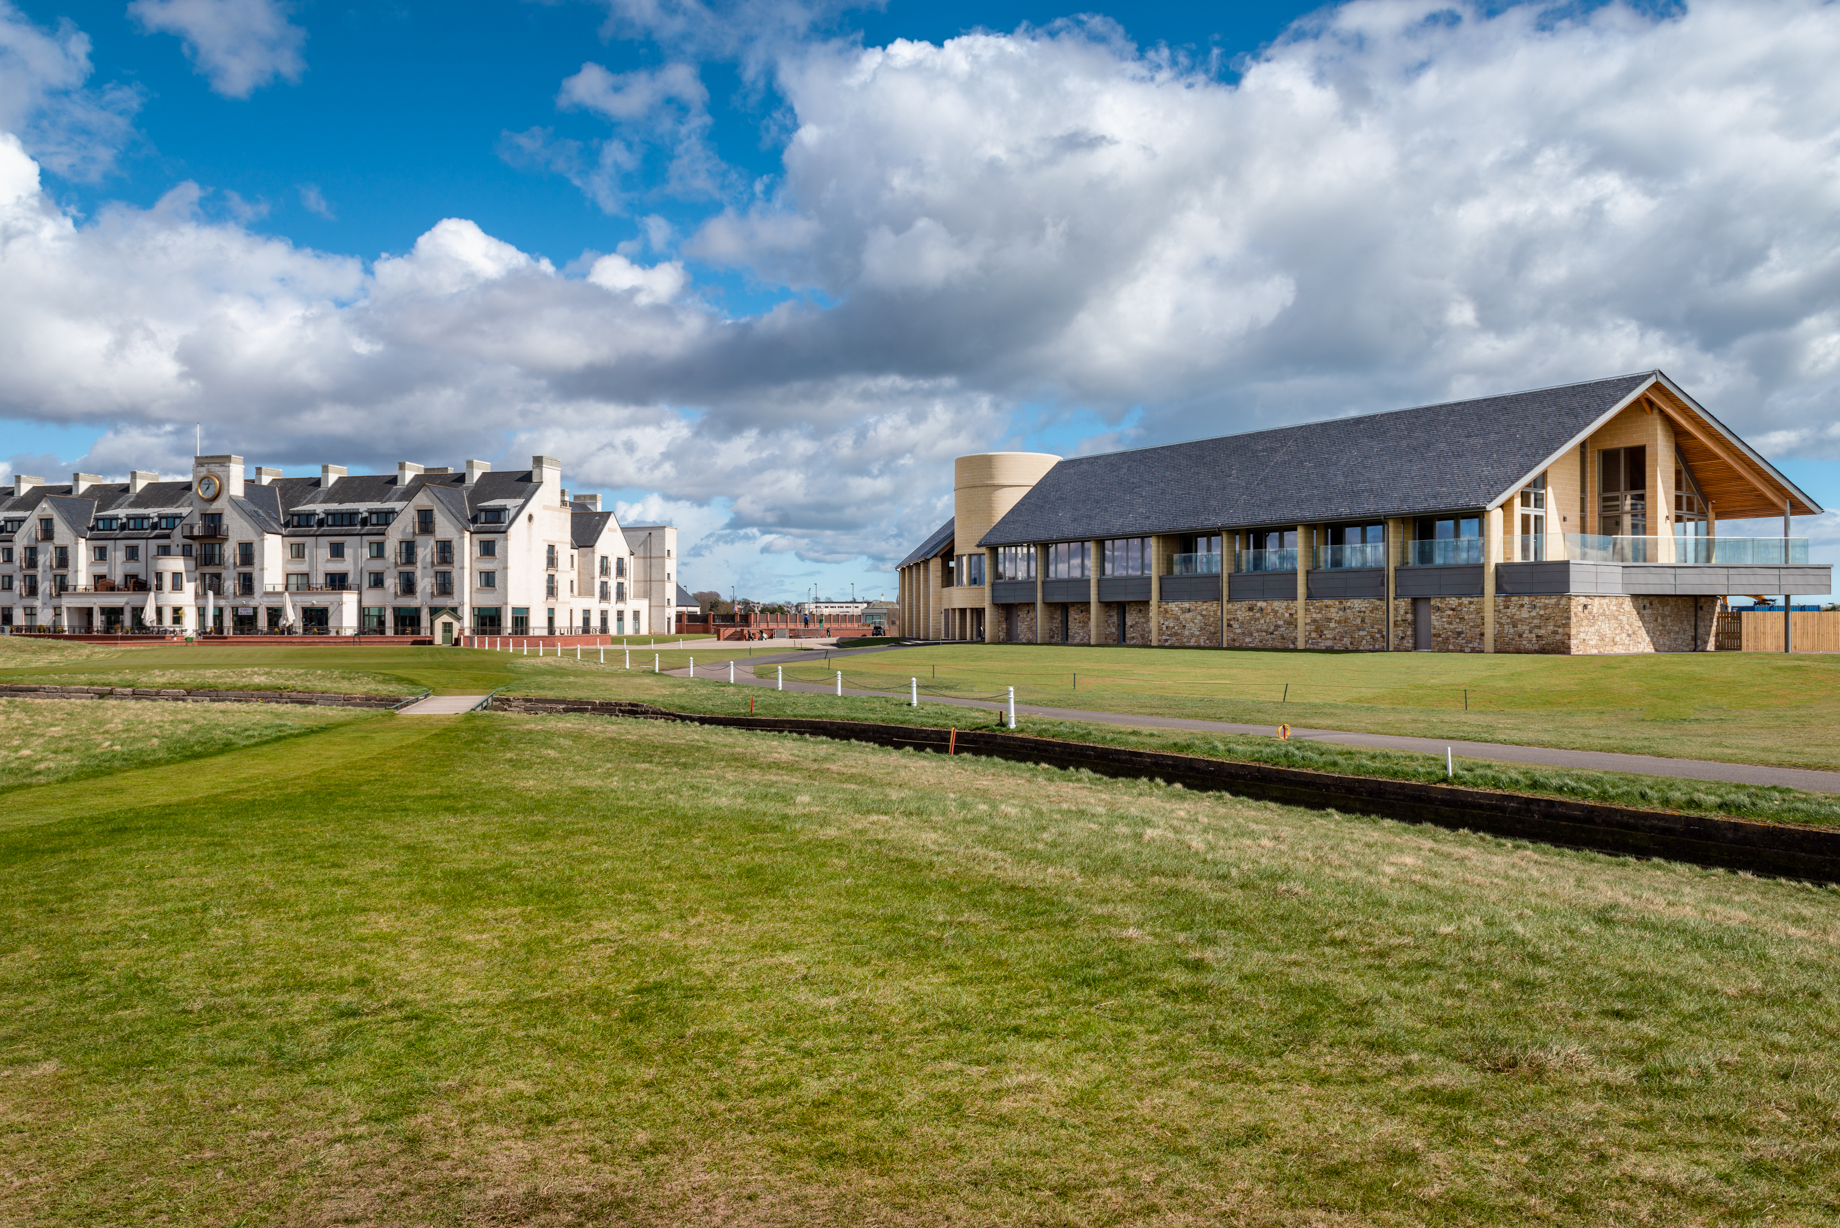 Carnoustie Golf Club | Ogilvie Construction | Carnoustie, Scotland